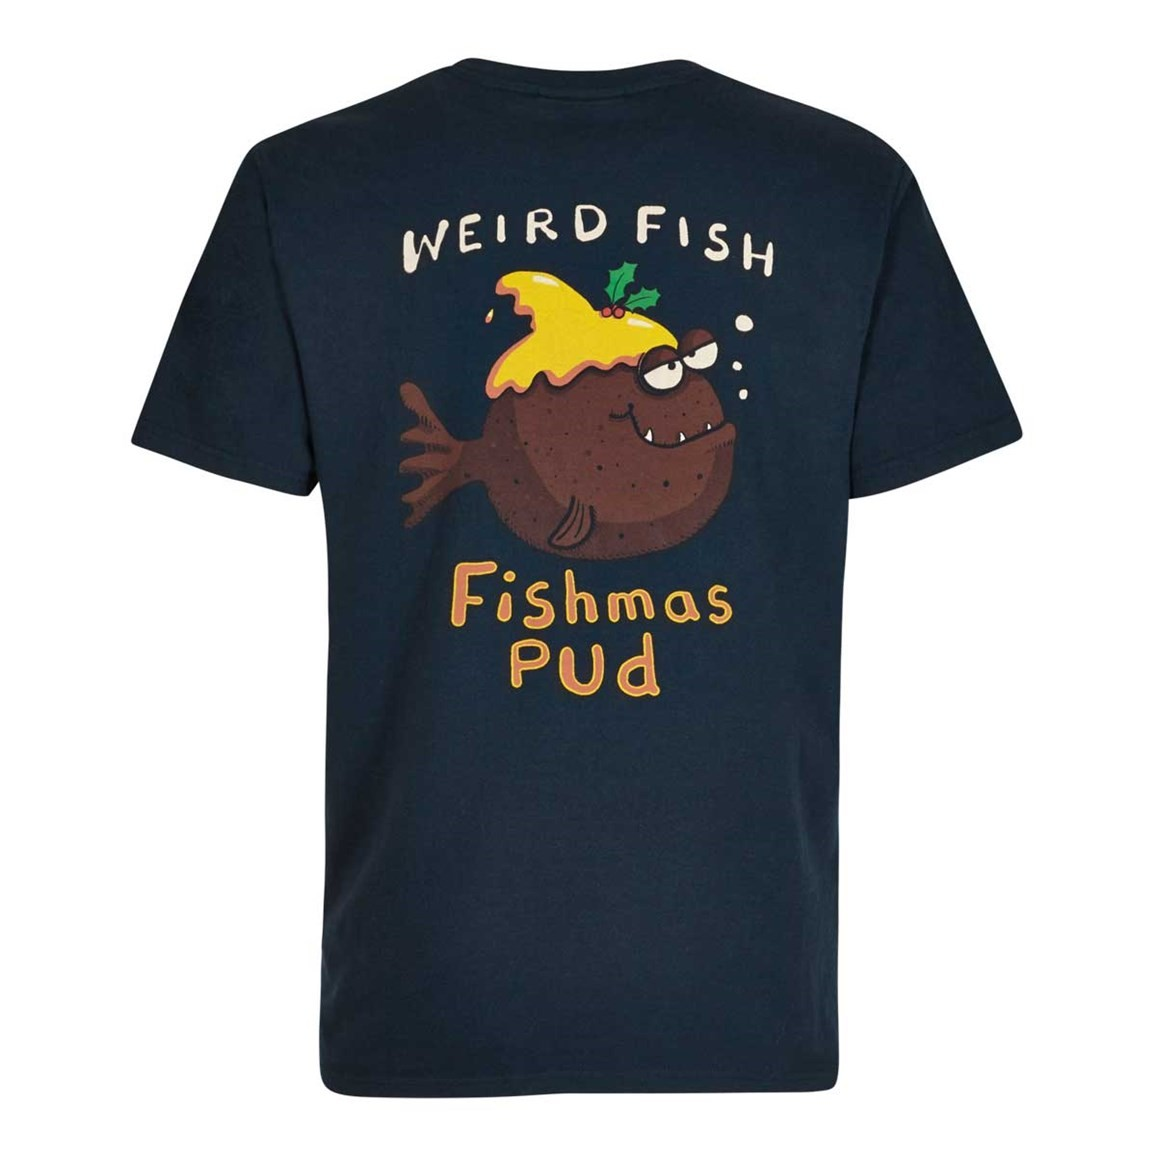 Weird Fish Fishmas Pud Artist T-Shirt Carbon